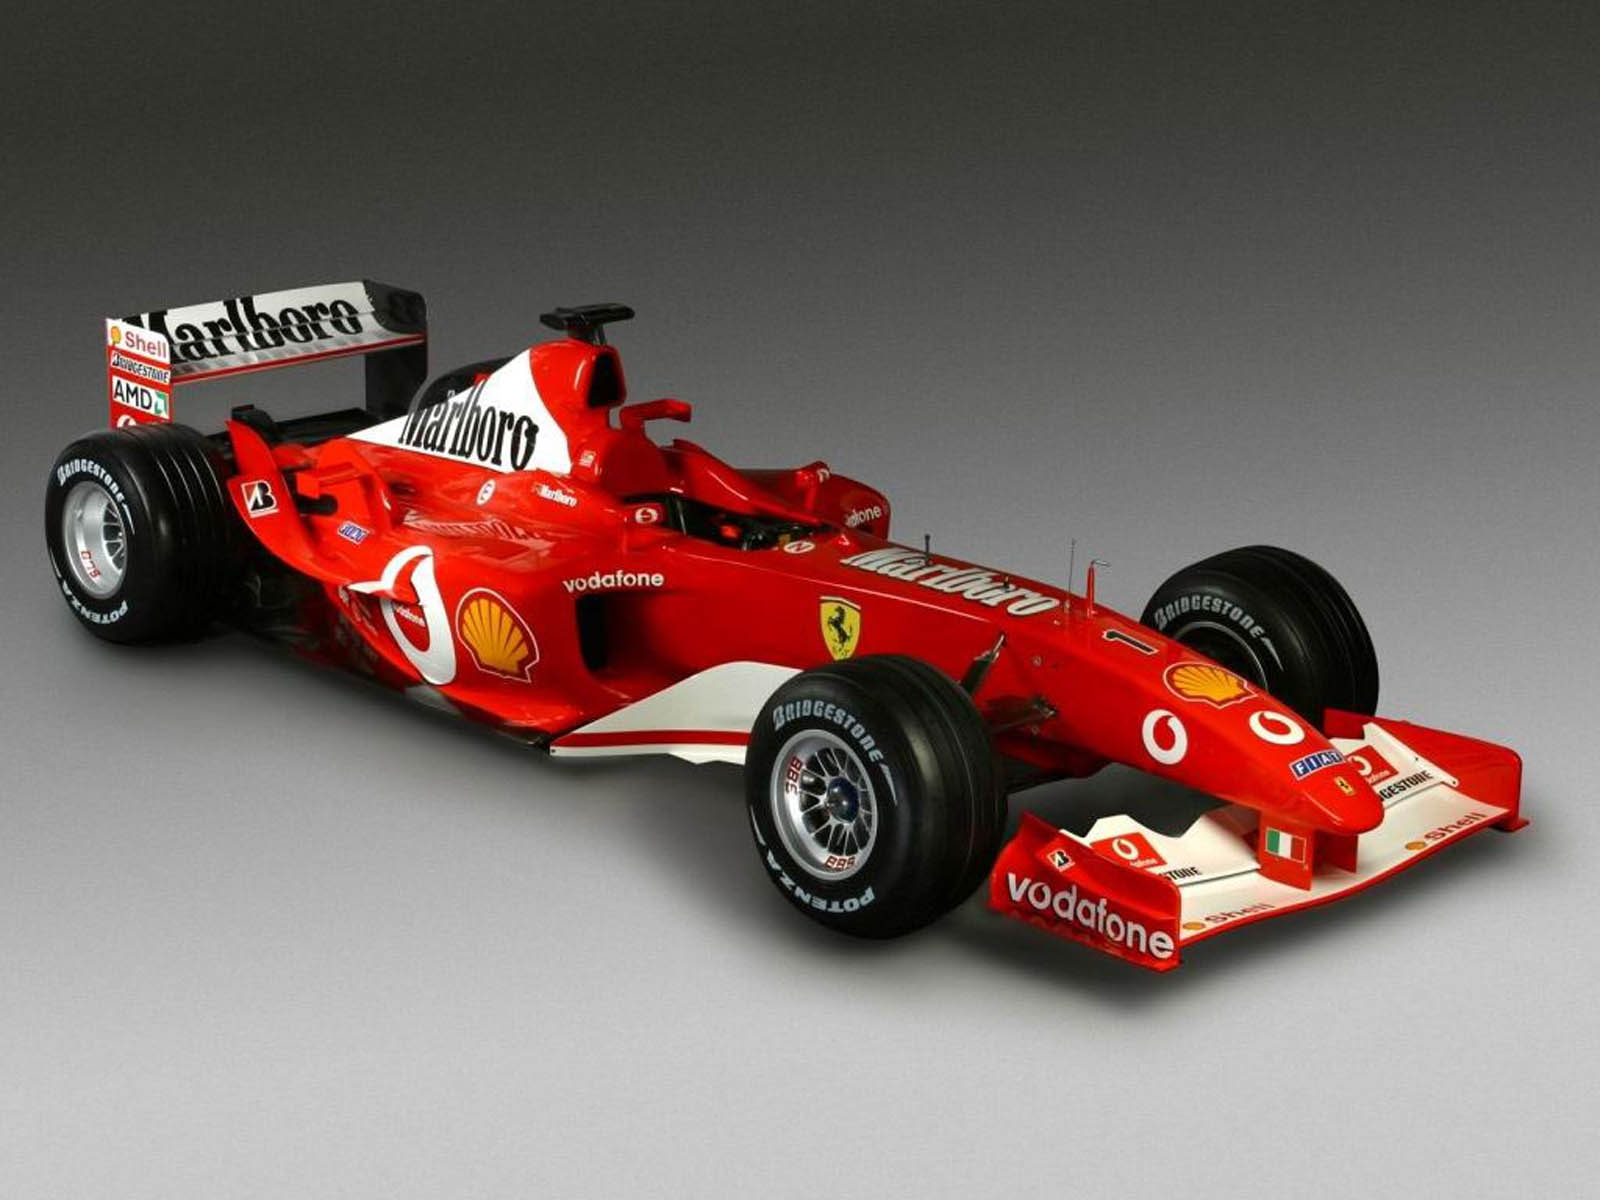 wallpapers formula 1 cars wallpapers. Black Bedroom Furniture Sets. Home Design Ideas